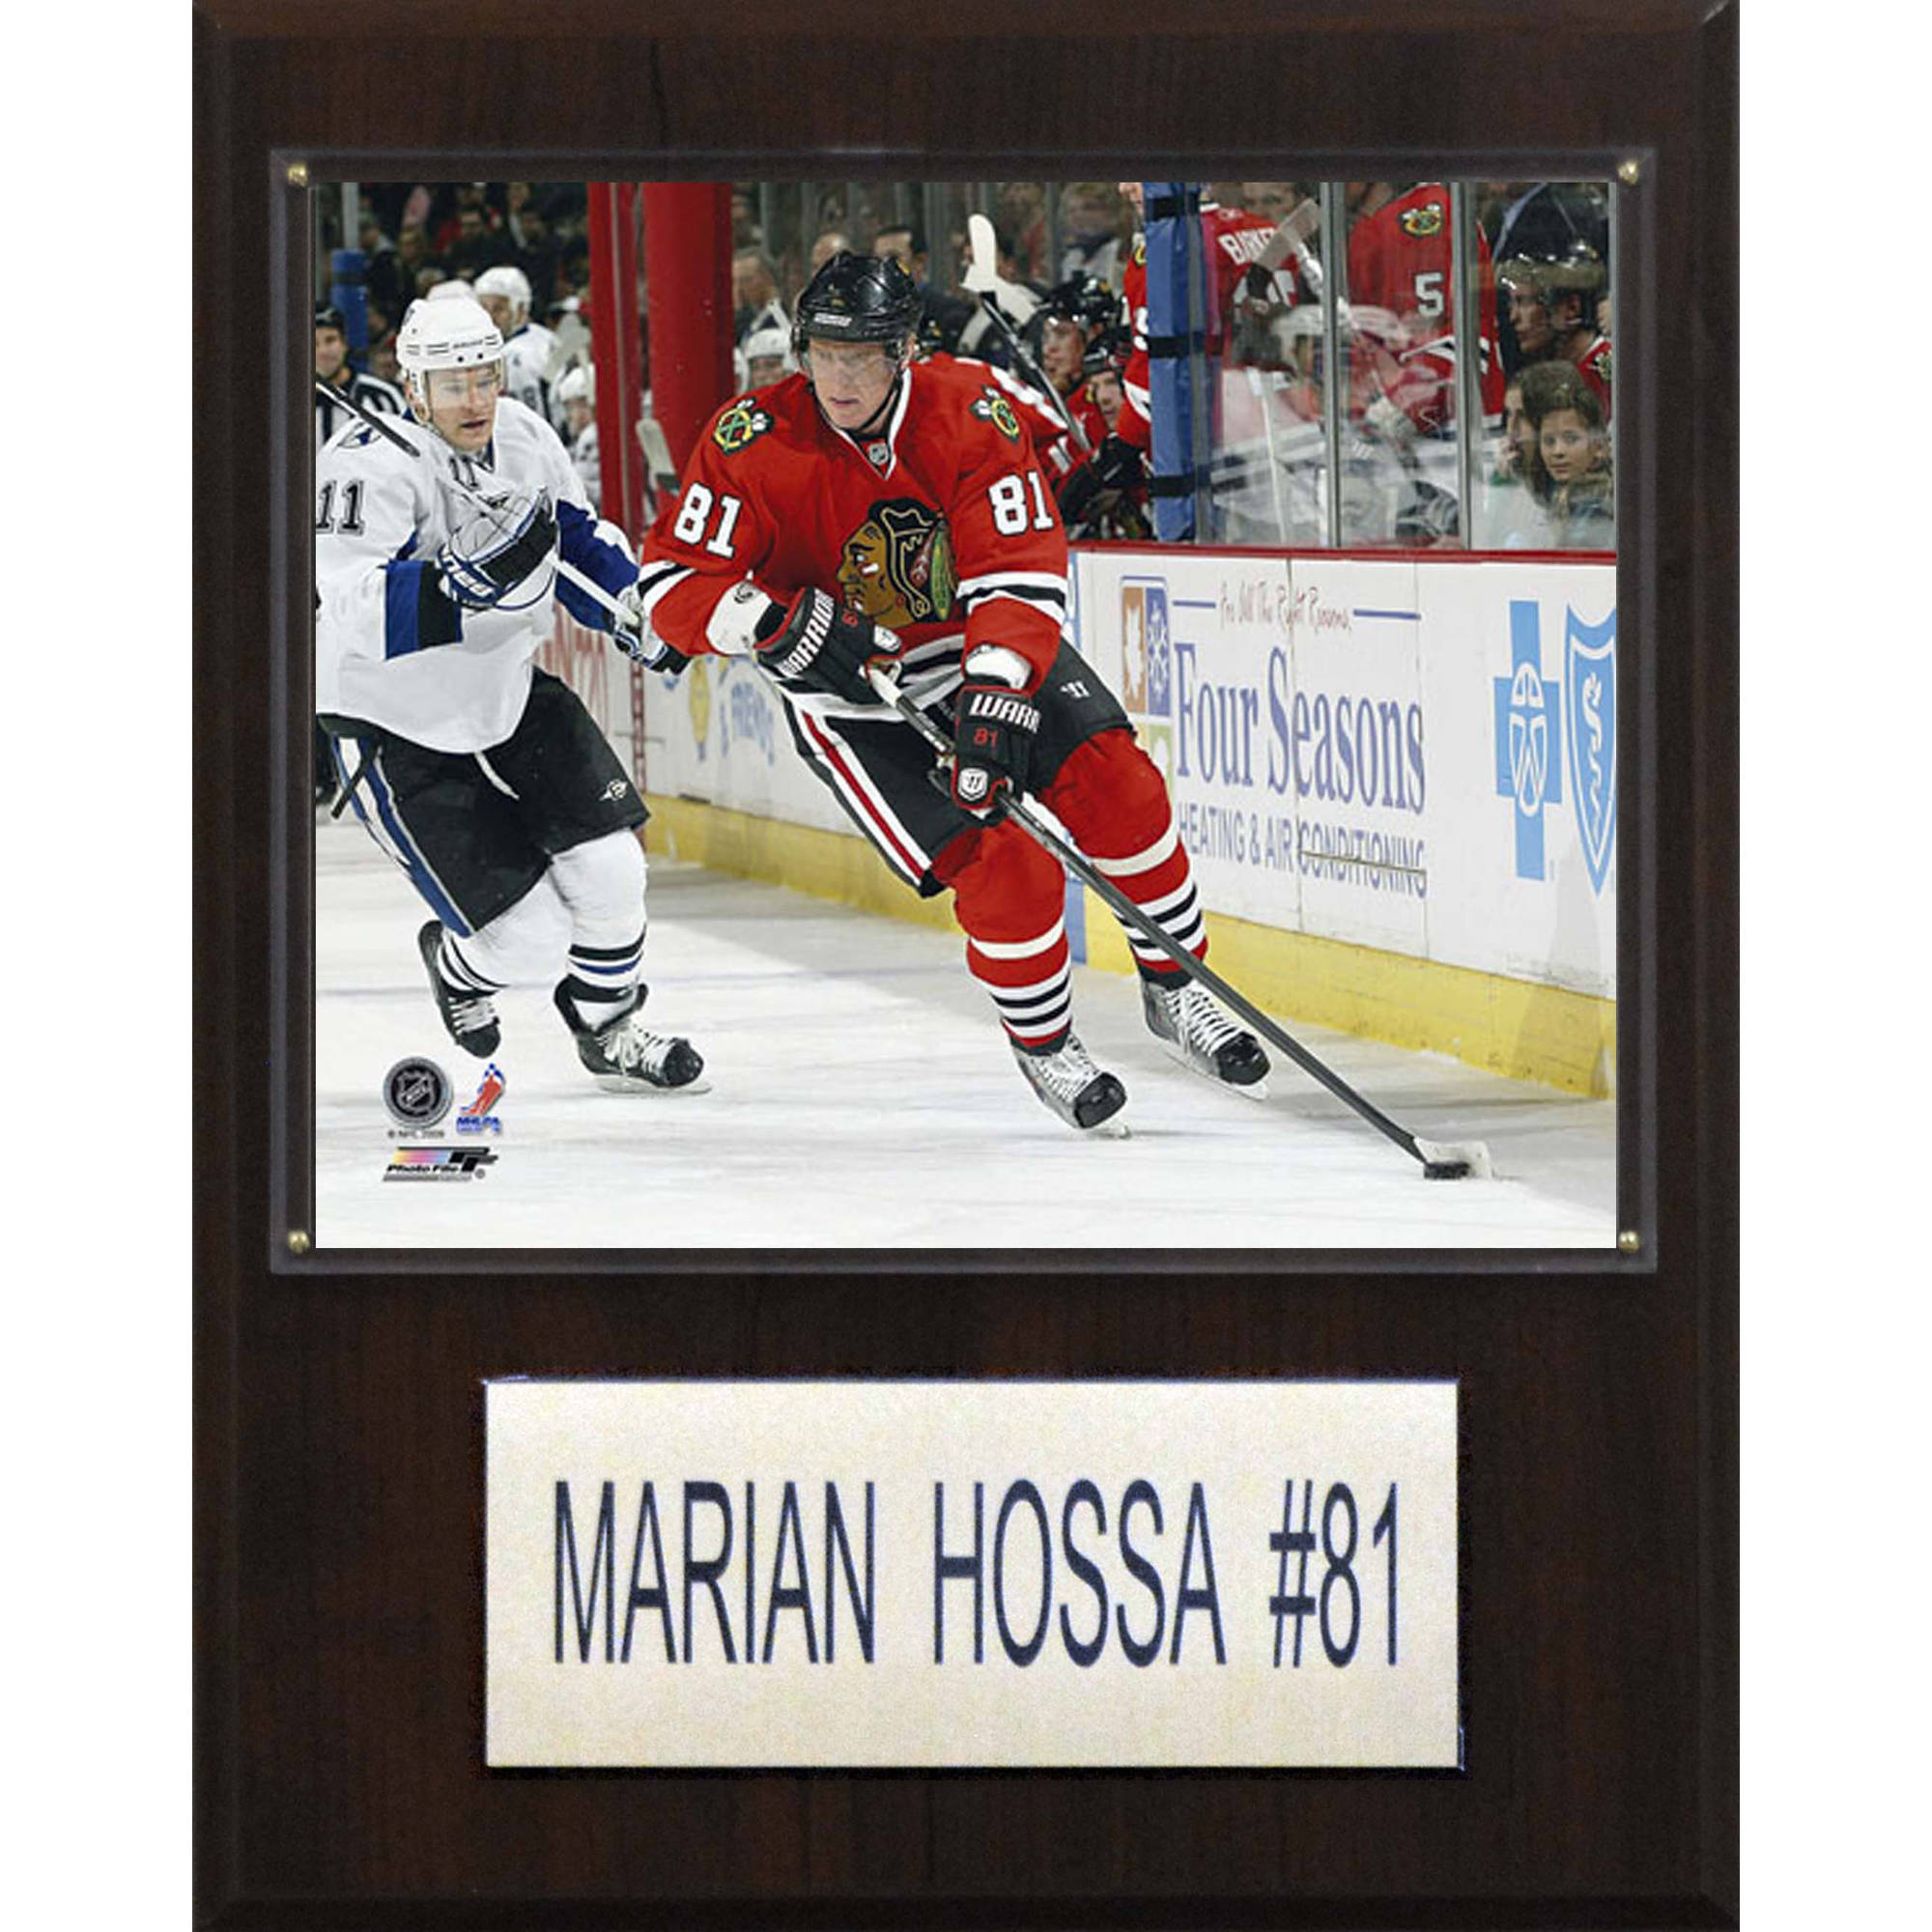 C&I Collectables NHL 12x15 Marian Hossa Chicago Blackhawks Player Plaque